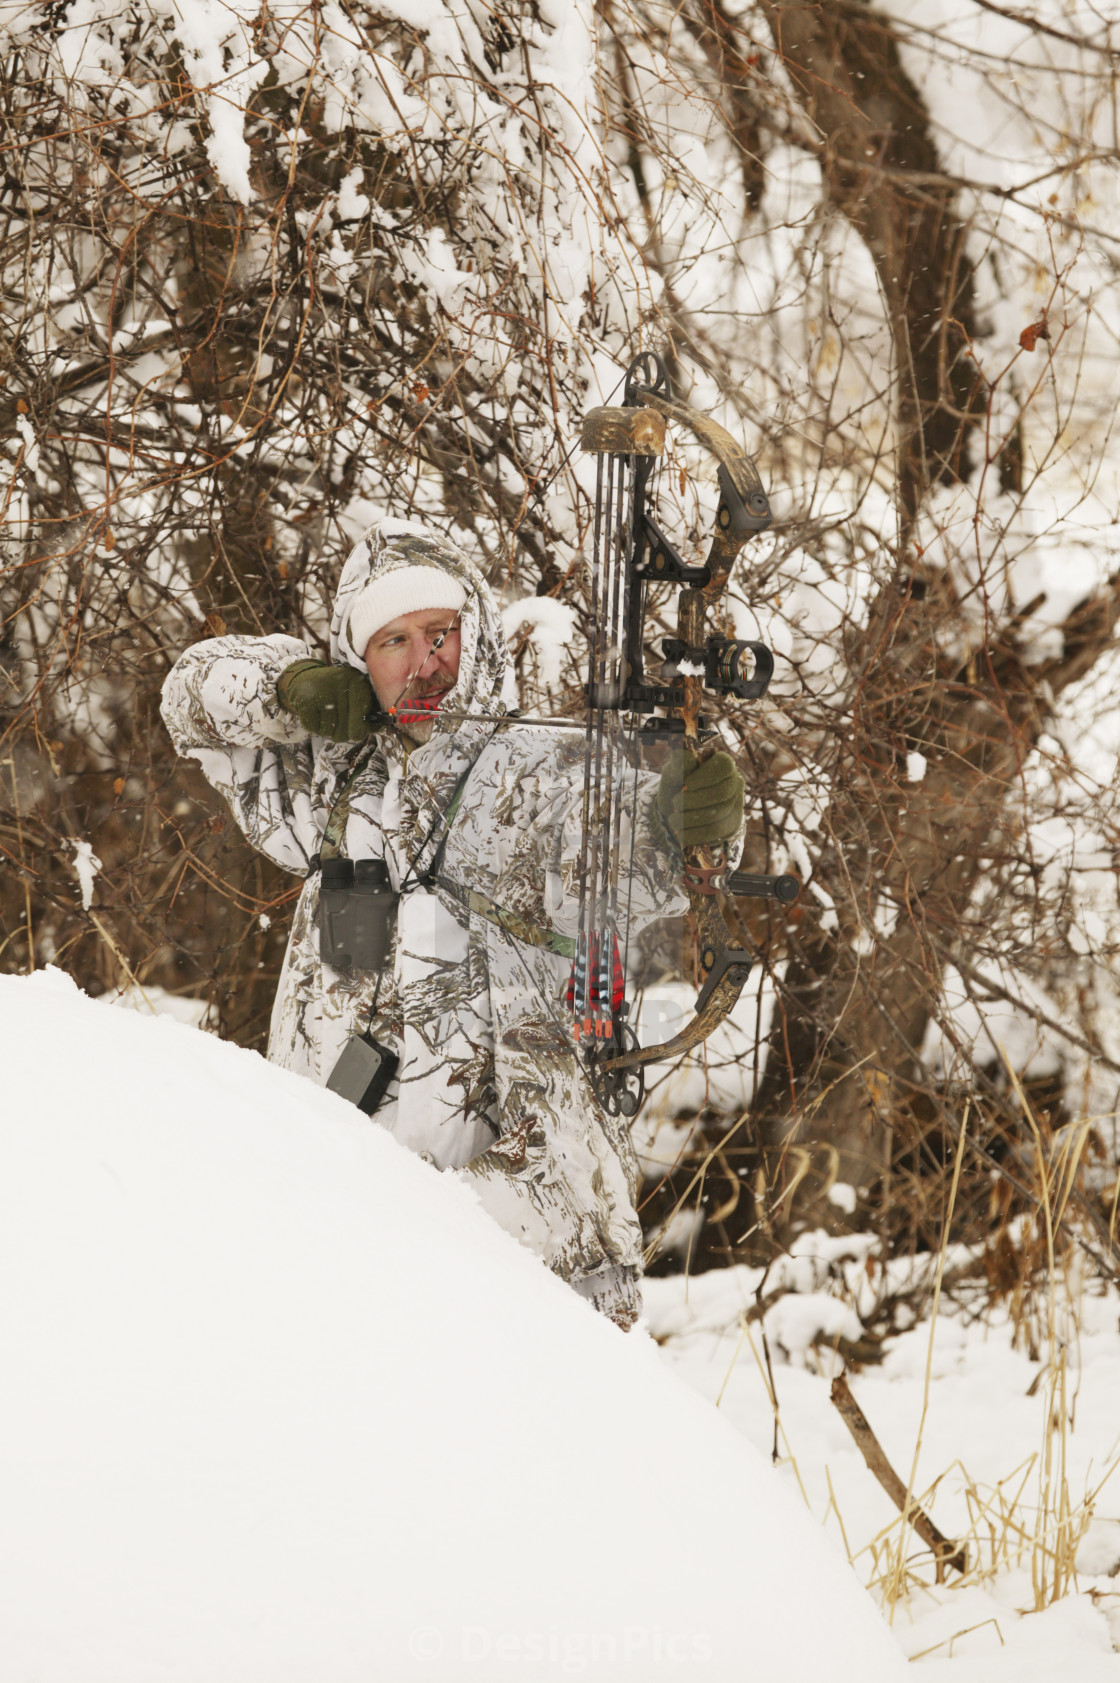 Male Bowhunter Draws Bow In Snow While Deer Hunting